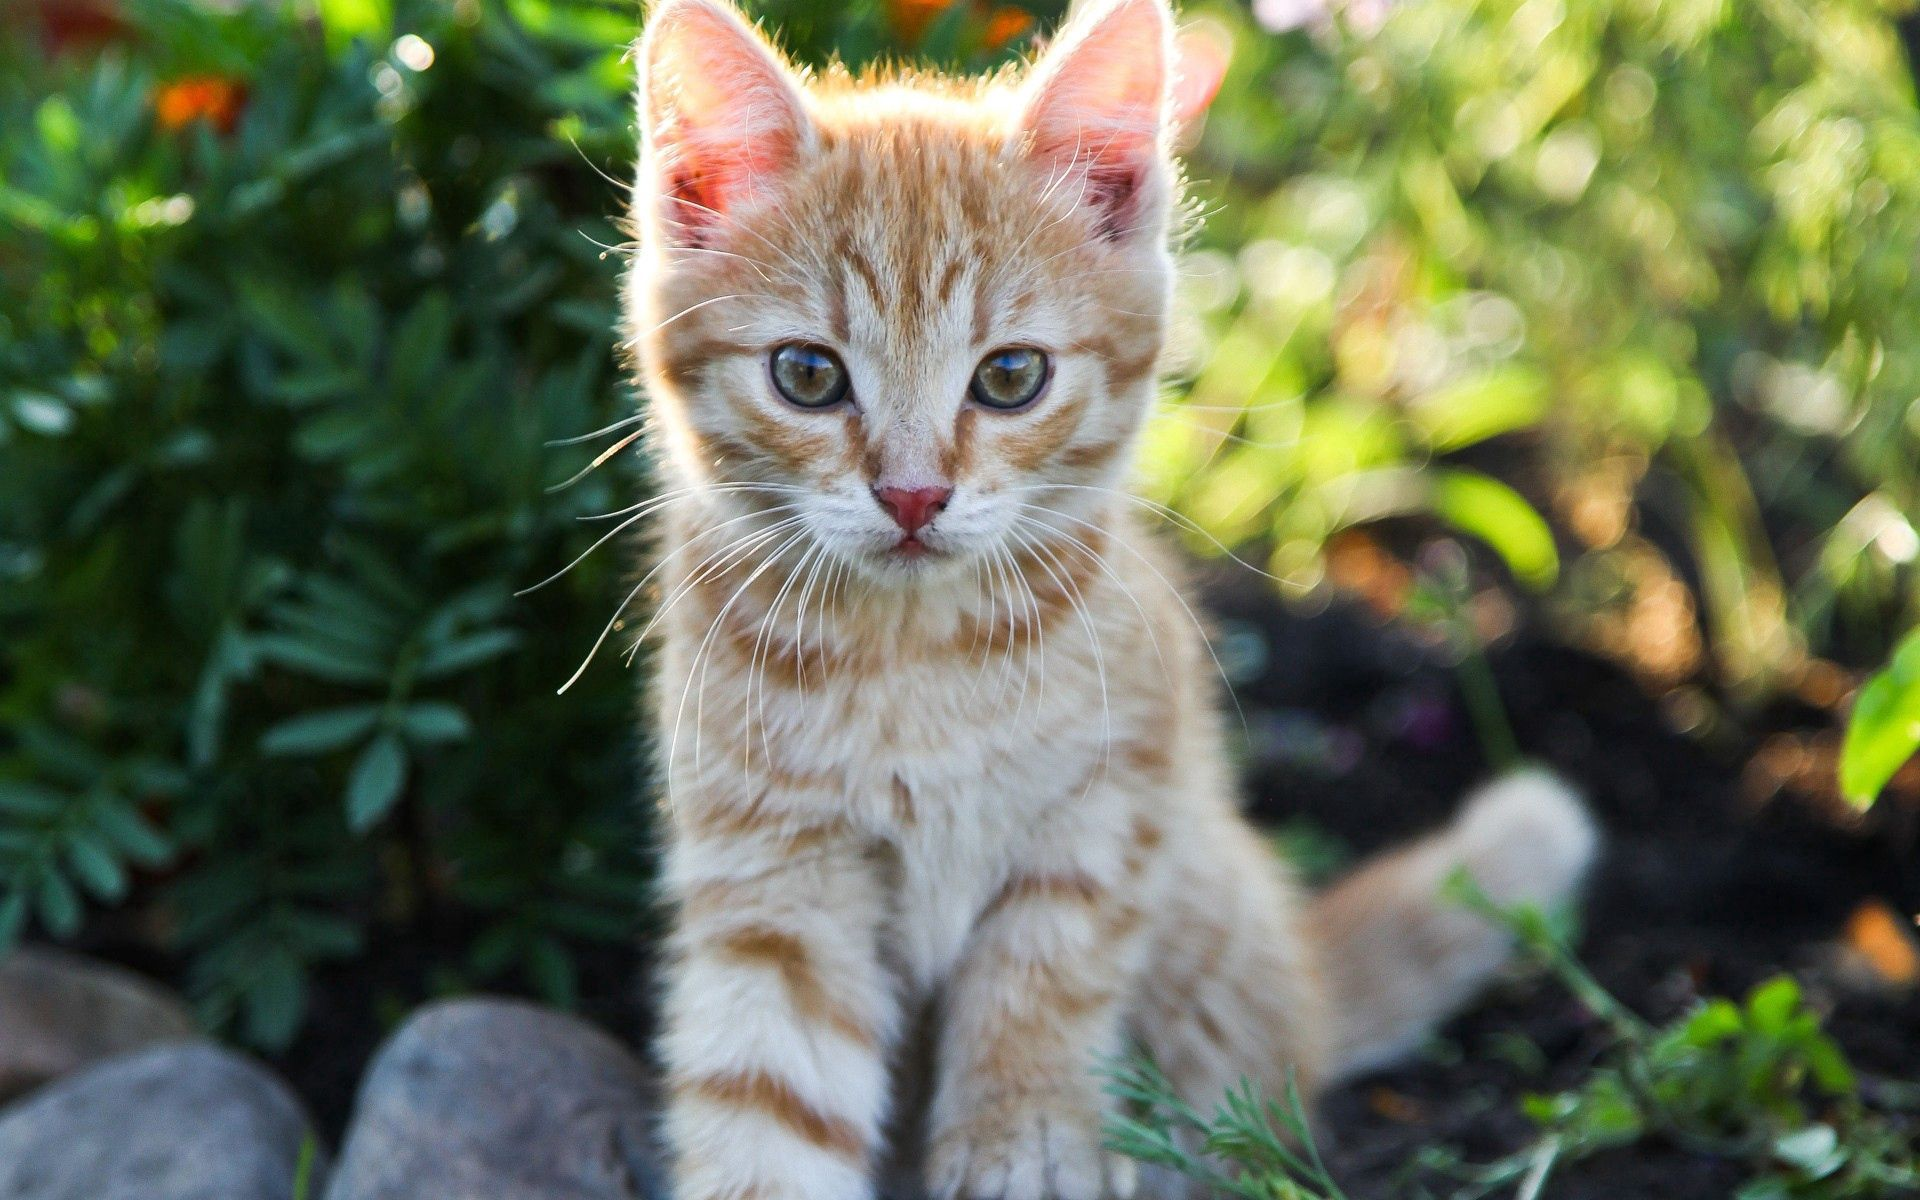 157696 download wallpaper Animals, Kitty, Kitten, Small, Nice, Sweetheart screensavers and pictures for free